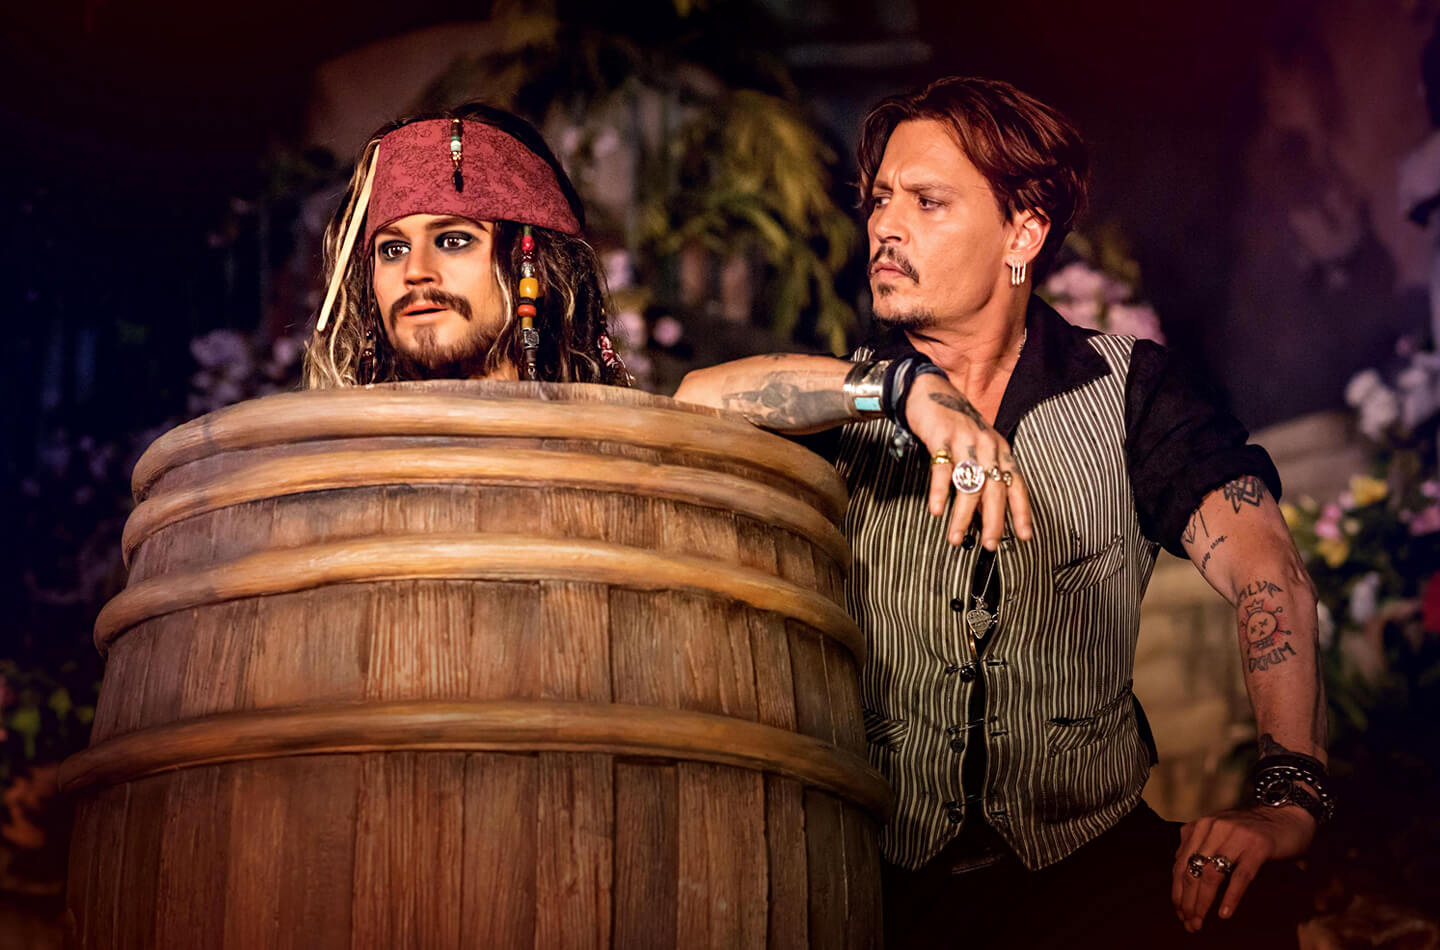 Johnny Depp staring at his attraction rendering of Jack Sparrow